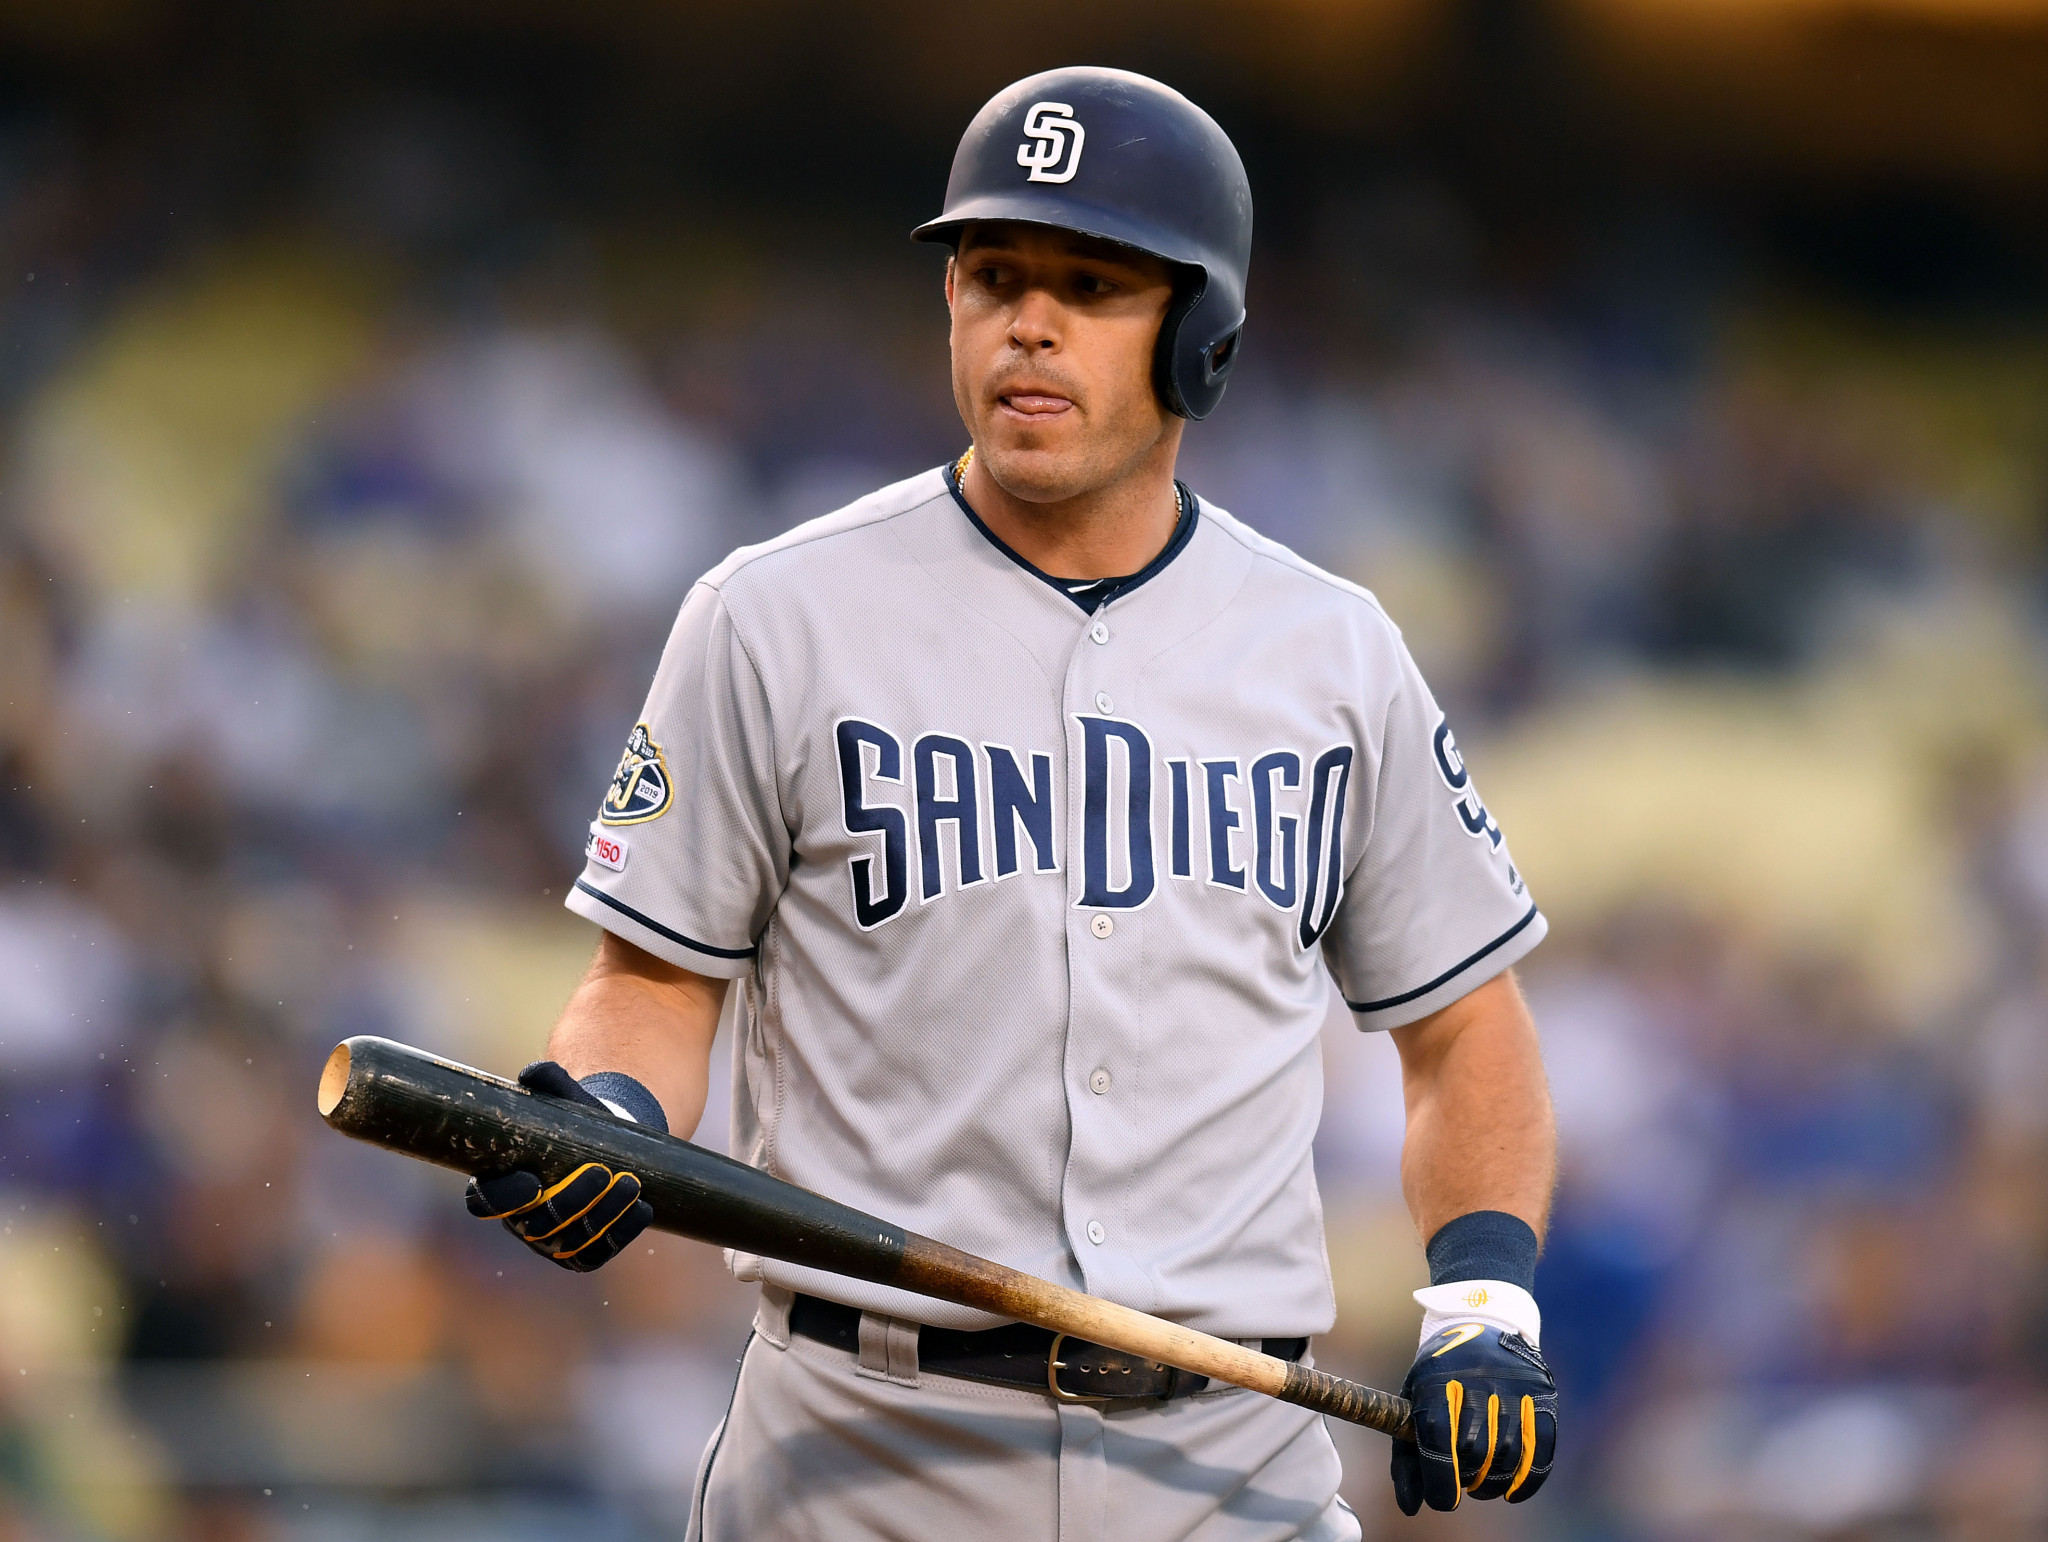 Kinsler set to play for Israel at Tokyo 2020 and aiming to inspire